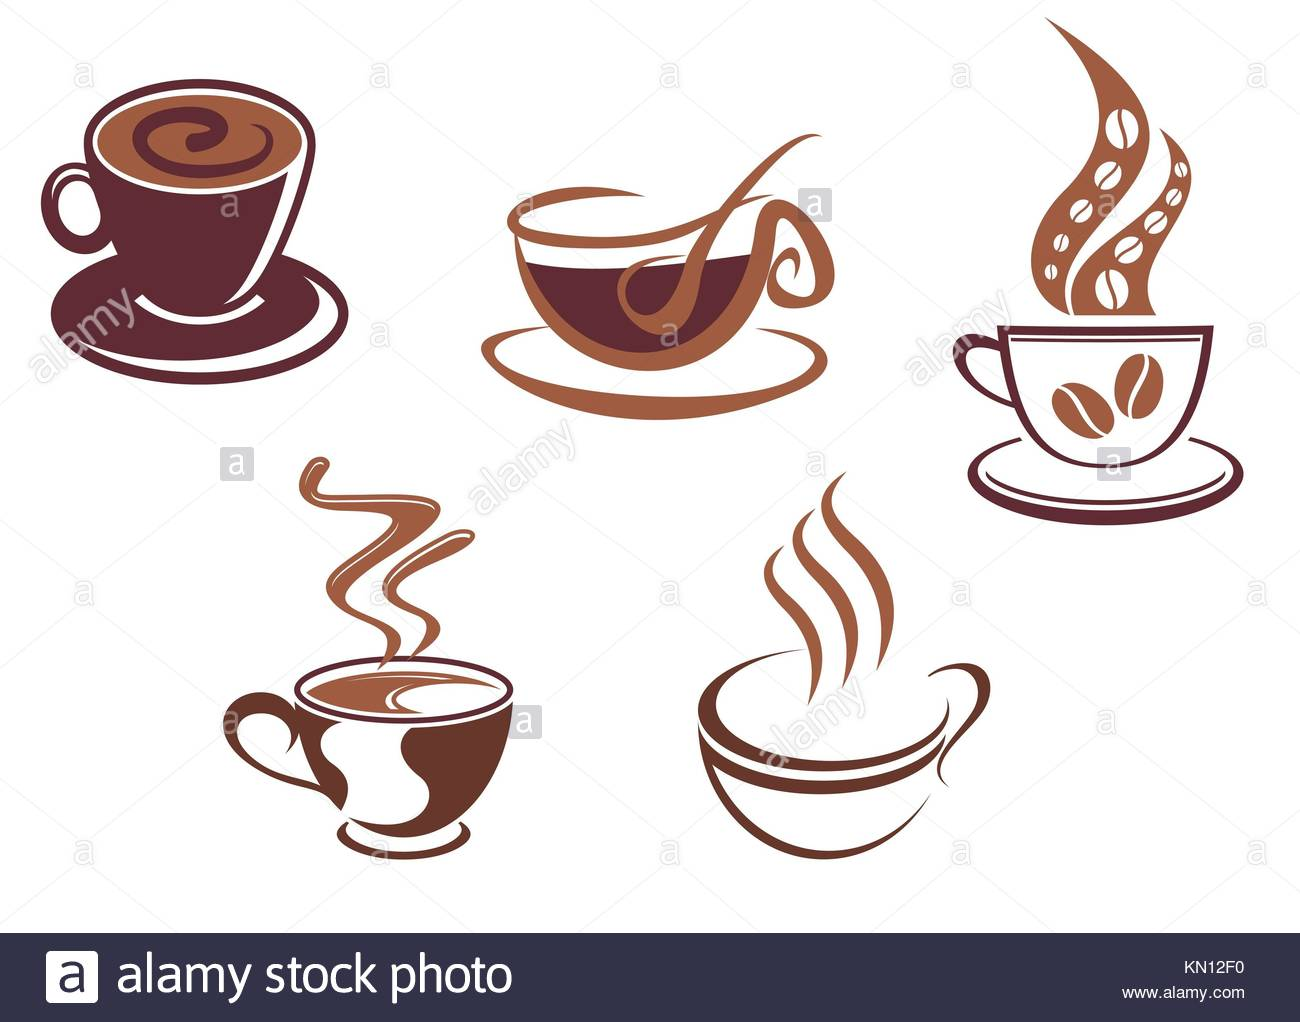 Coffee And Tea Symbols And Icons For Food Design Stock Photo